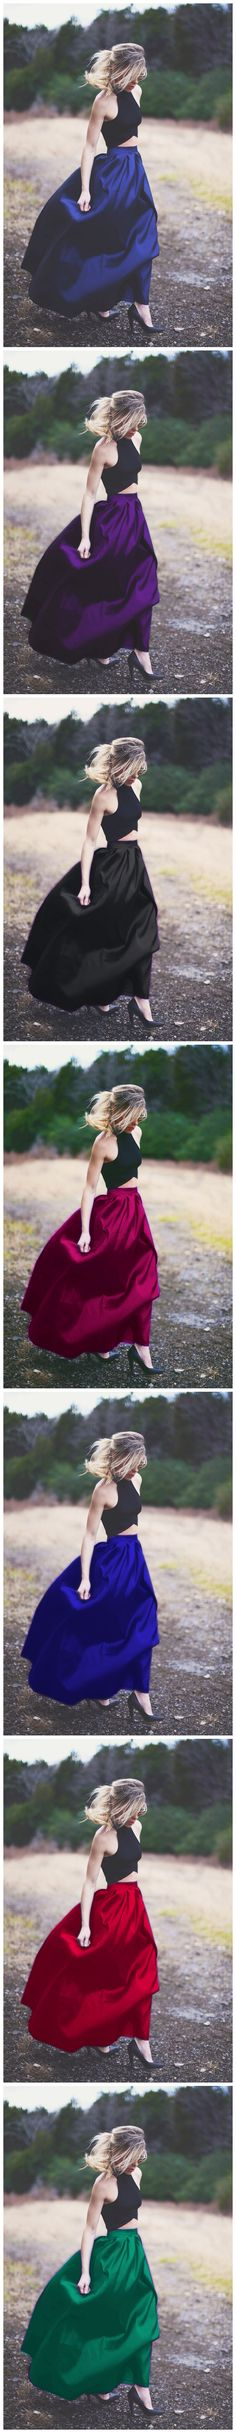 elegant crop top with taffeta ball gowns,this two piece dresses is an must have for your prom /evening/party or any other occasions! #birthday #twopiecepromdress #2pieceprom dress #longpartydress#photography #dreamdresses #elegant #chic